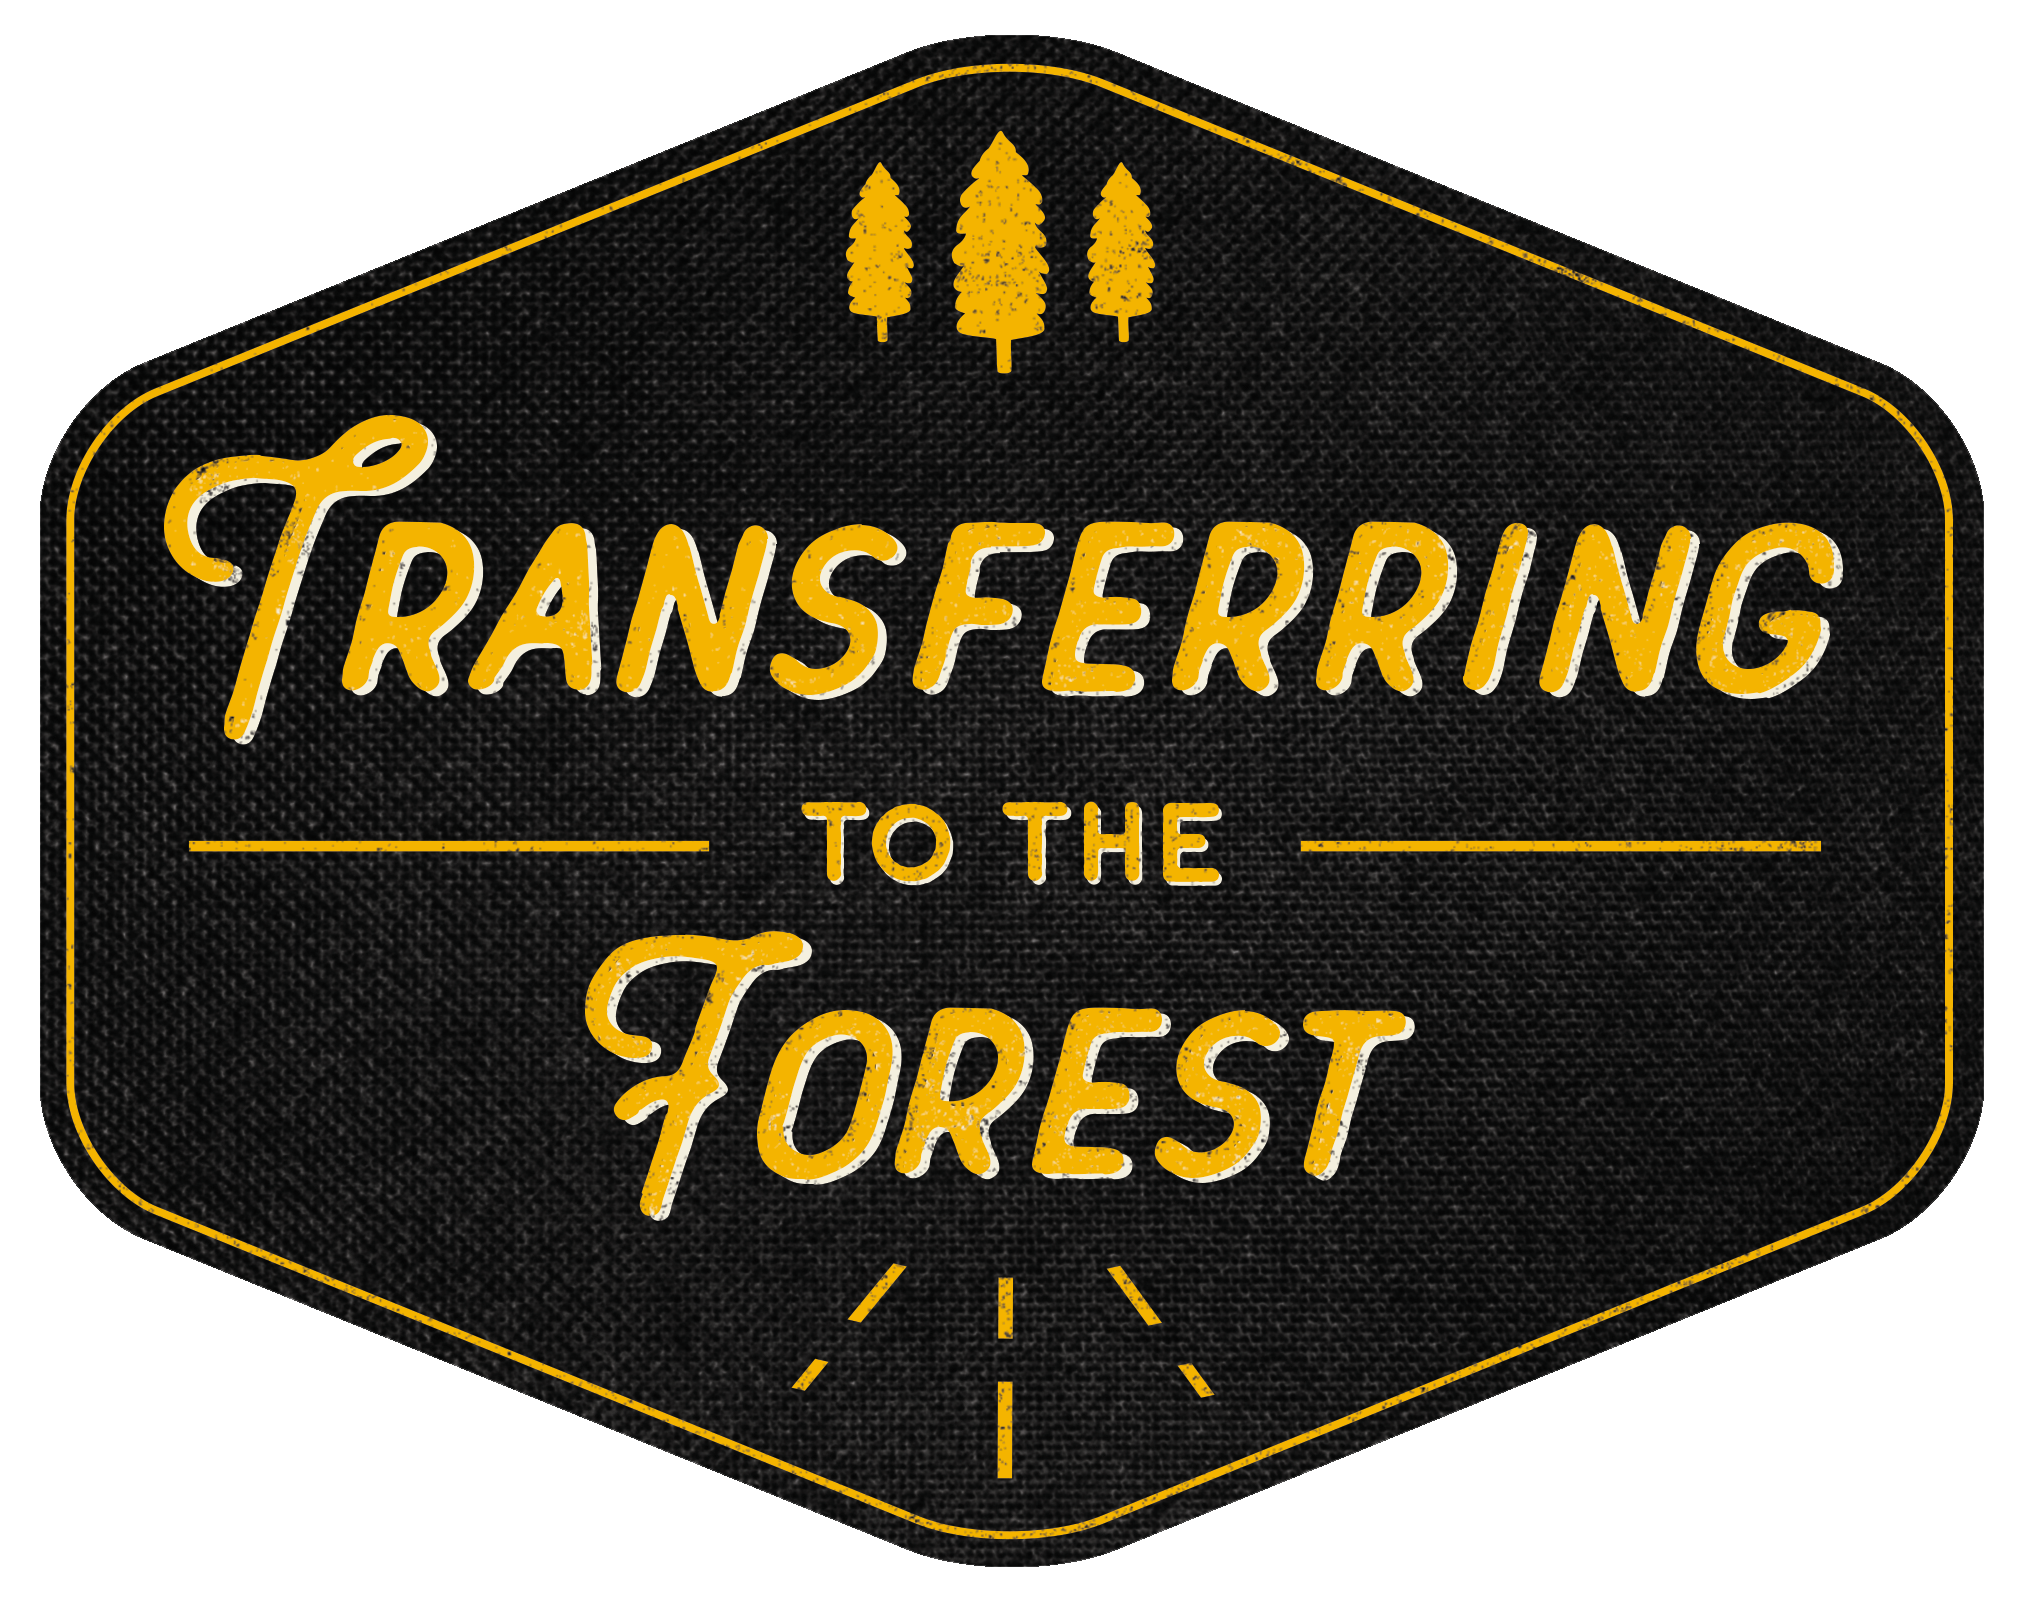 Transferring to the Forest badge